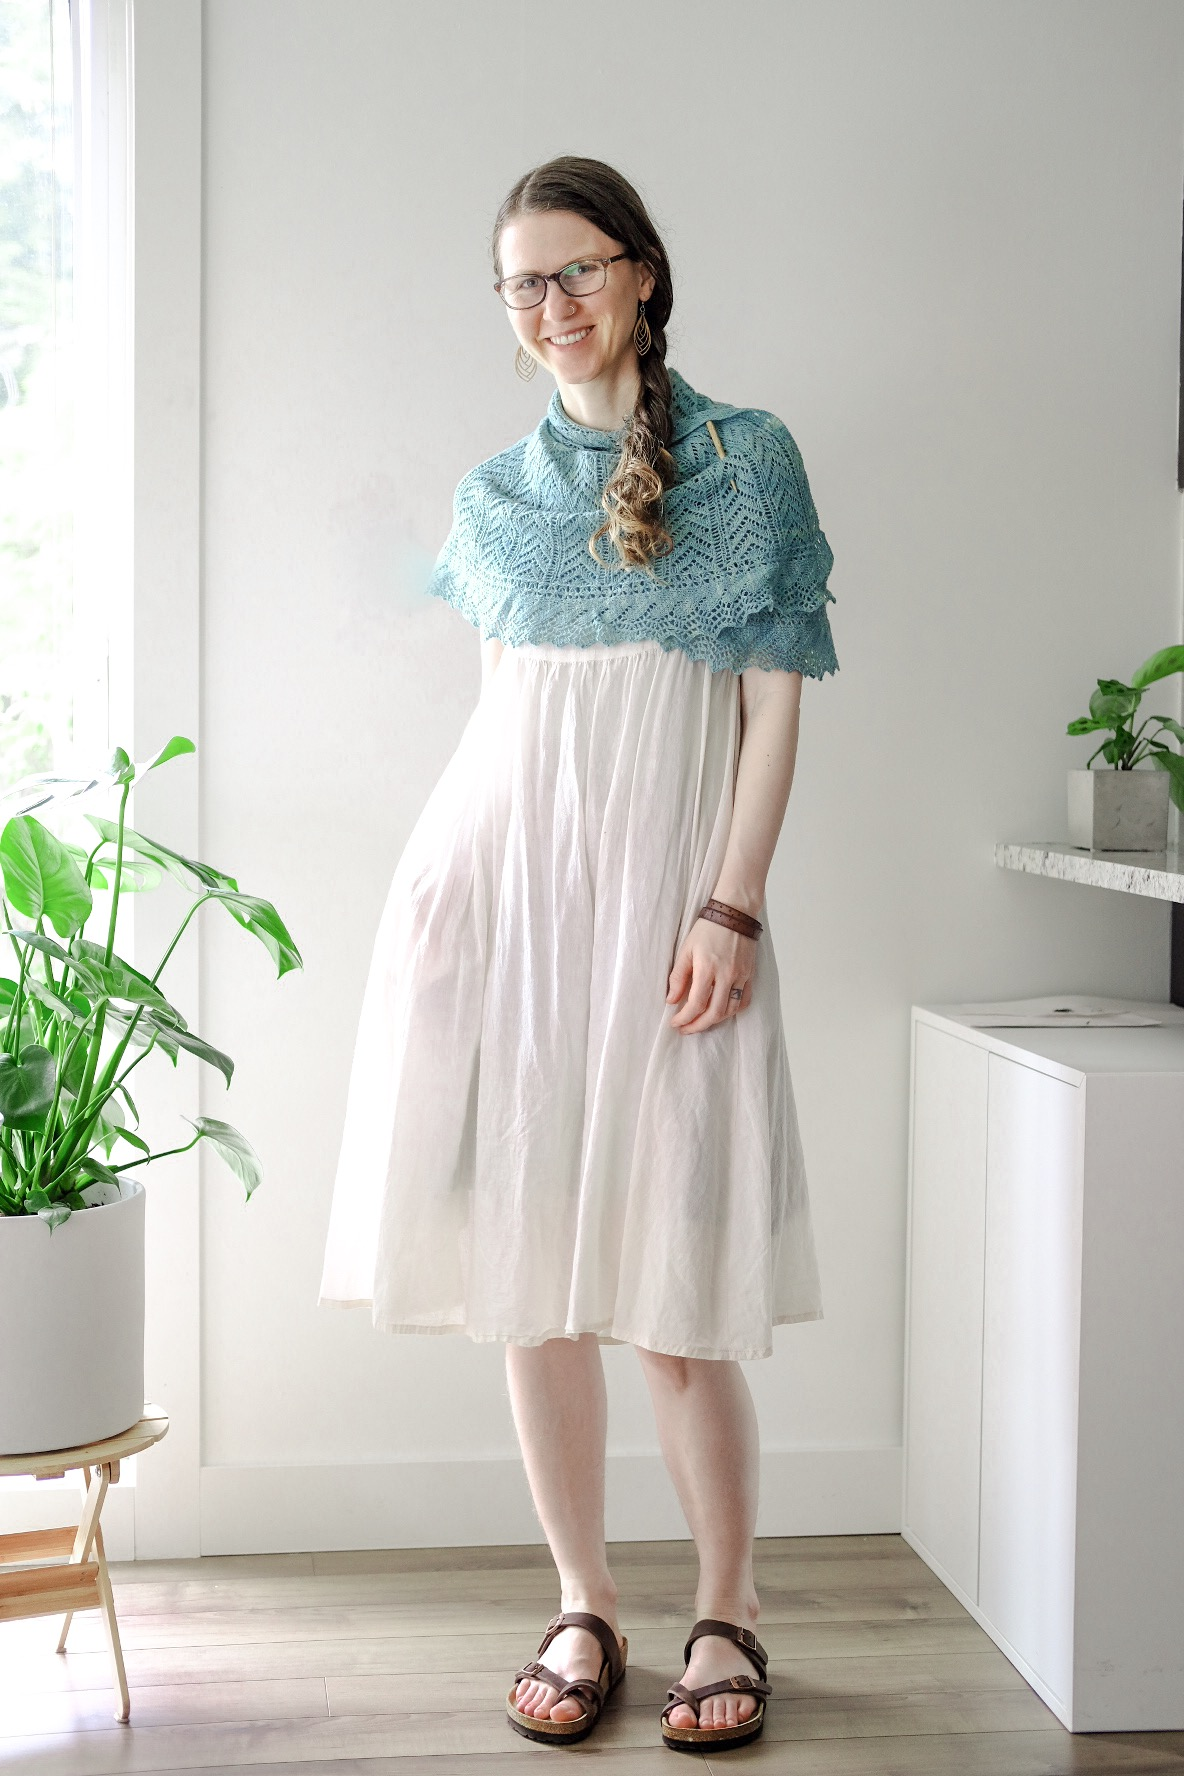 Feeling a little frilly in this comfy handmade outfit!